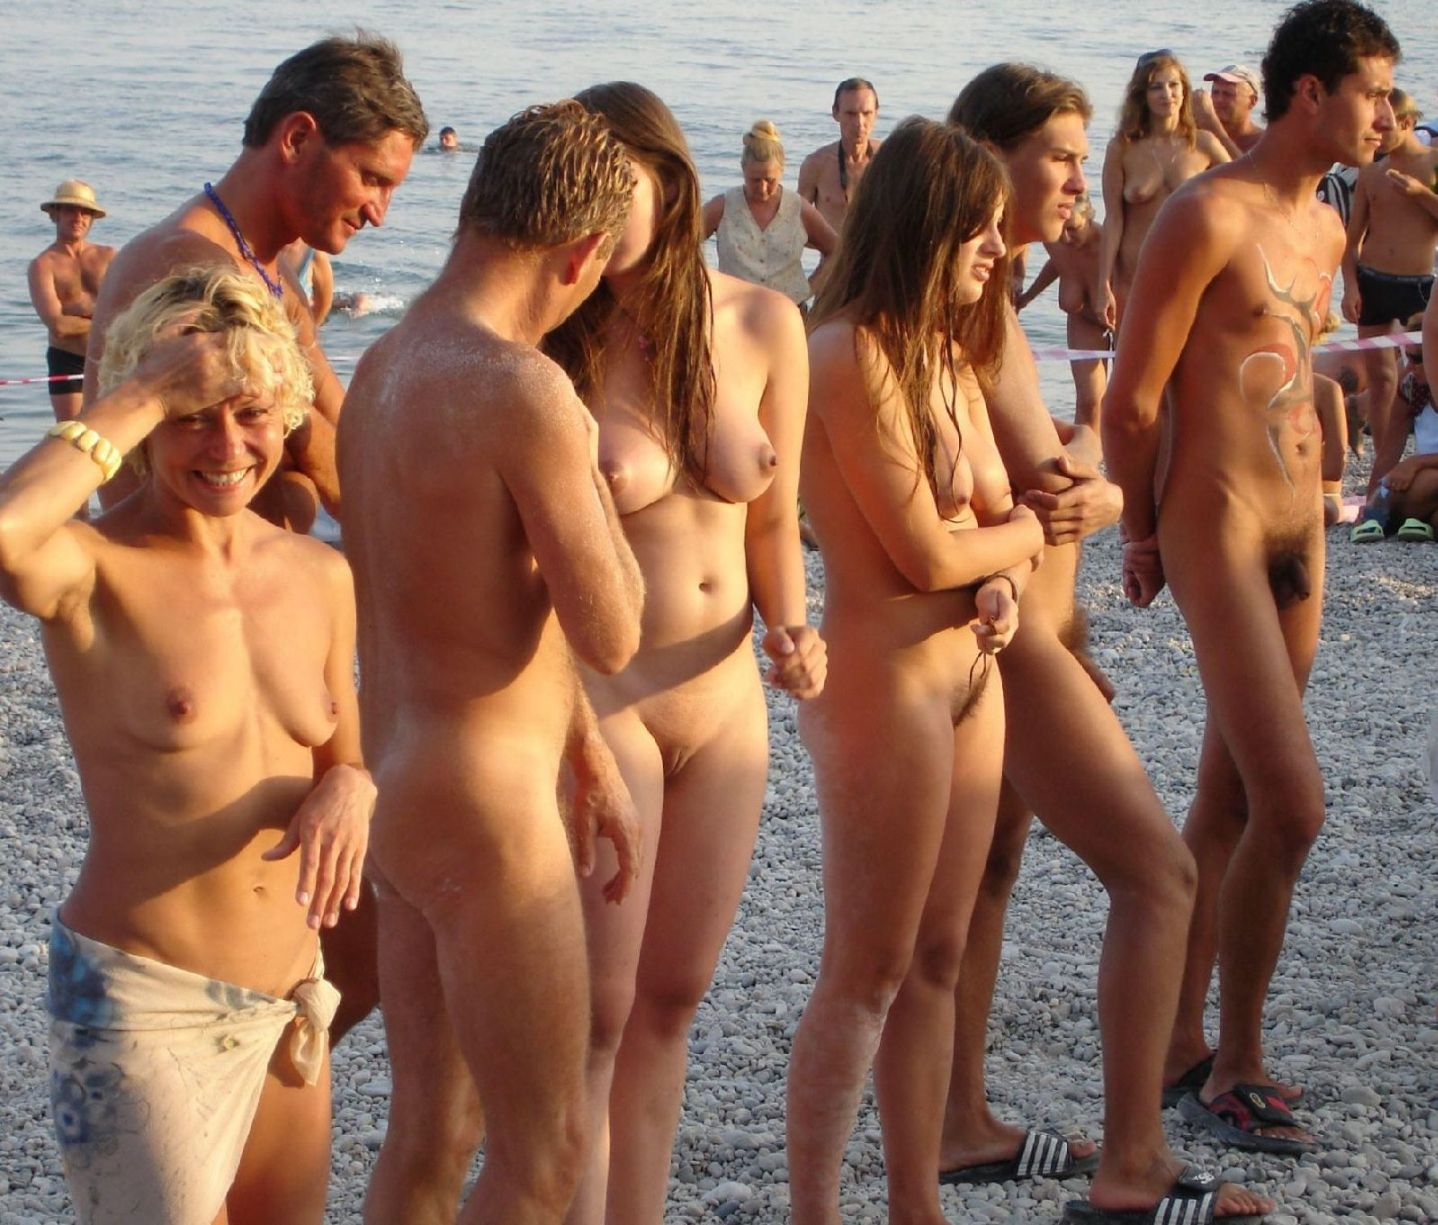 Naked natural girls nude beach agree, useful